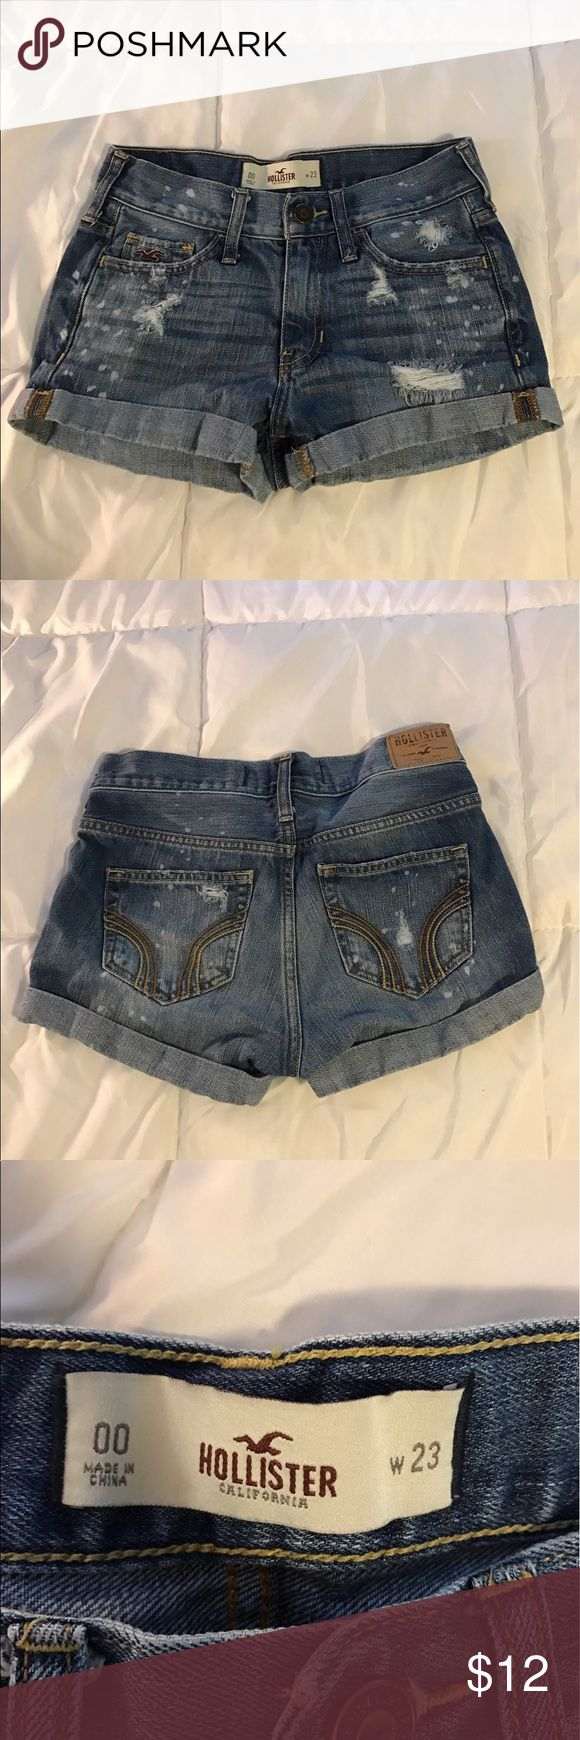 Hollister denim shorts Xs medium wash shorts. Worn once or twice. These shorts are very well made and look great with tee shirts or over a bathing suit! Feel free to make an offer! Hollister Shorts Jean Shorts